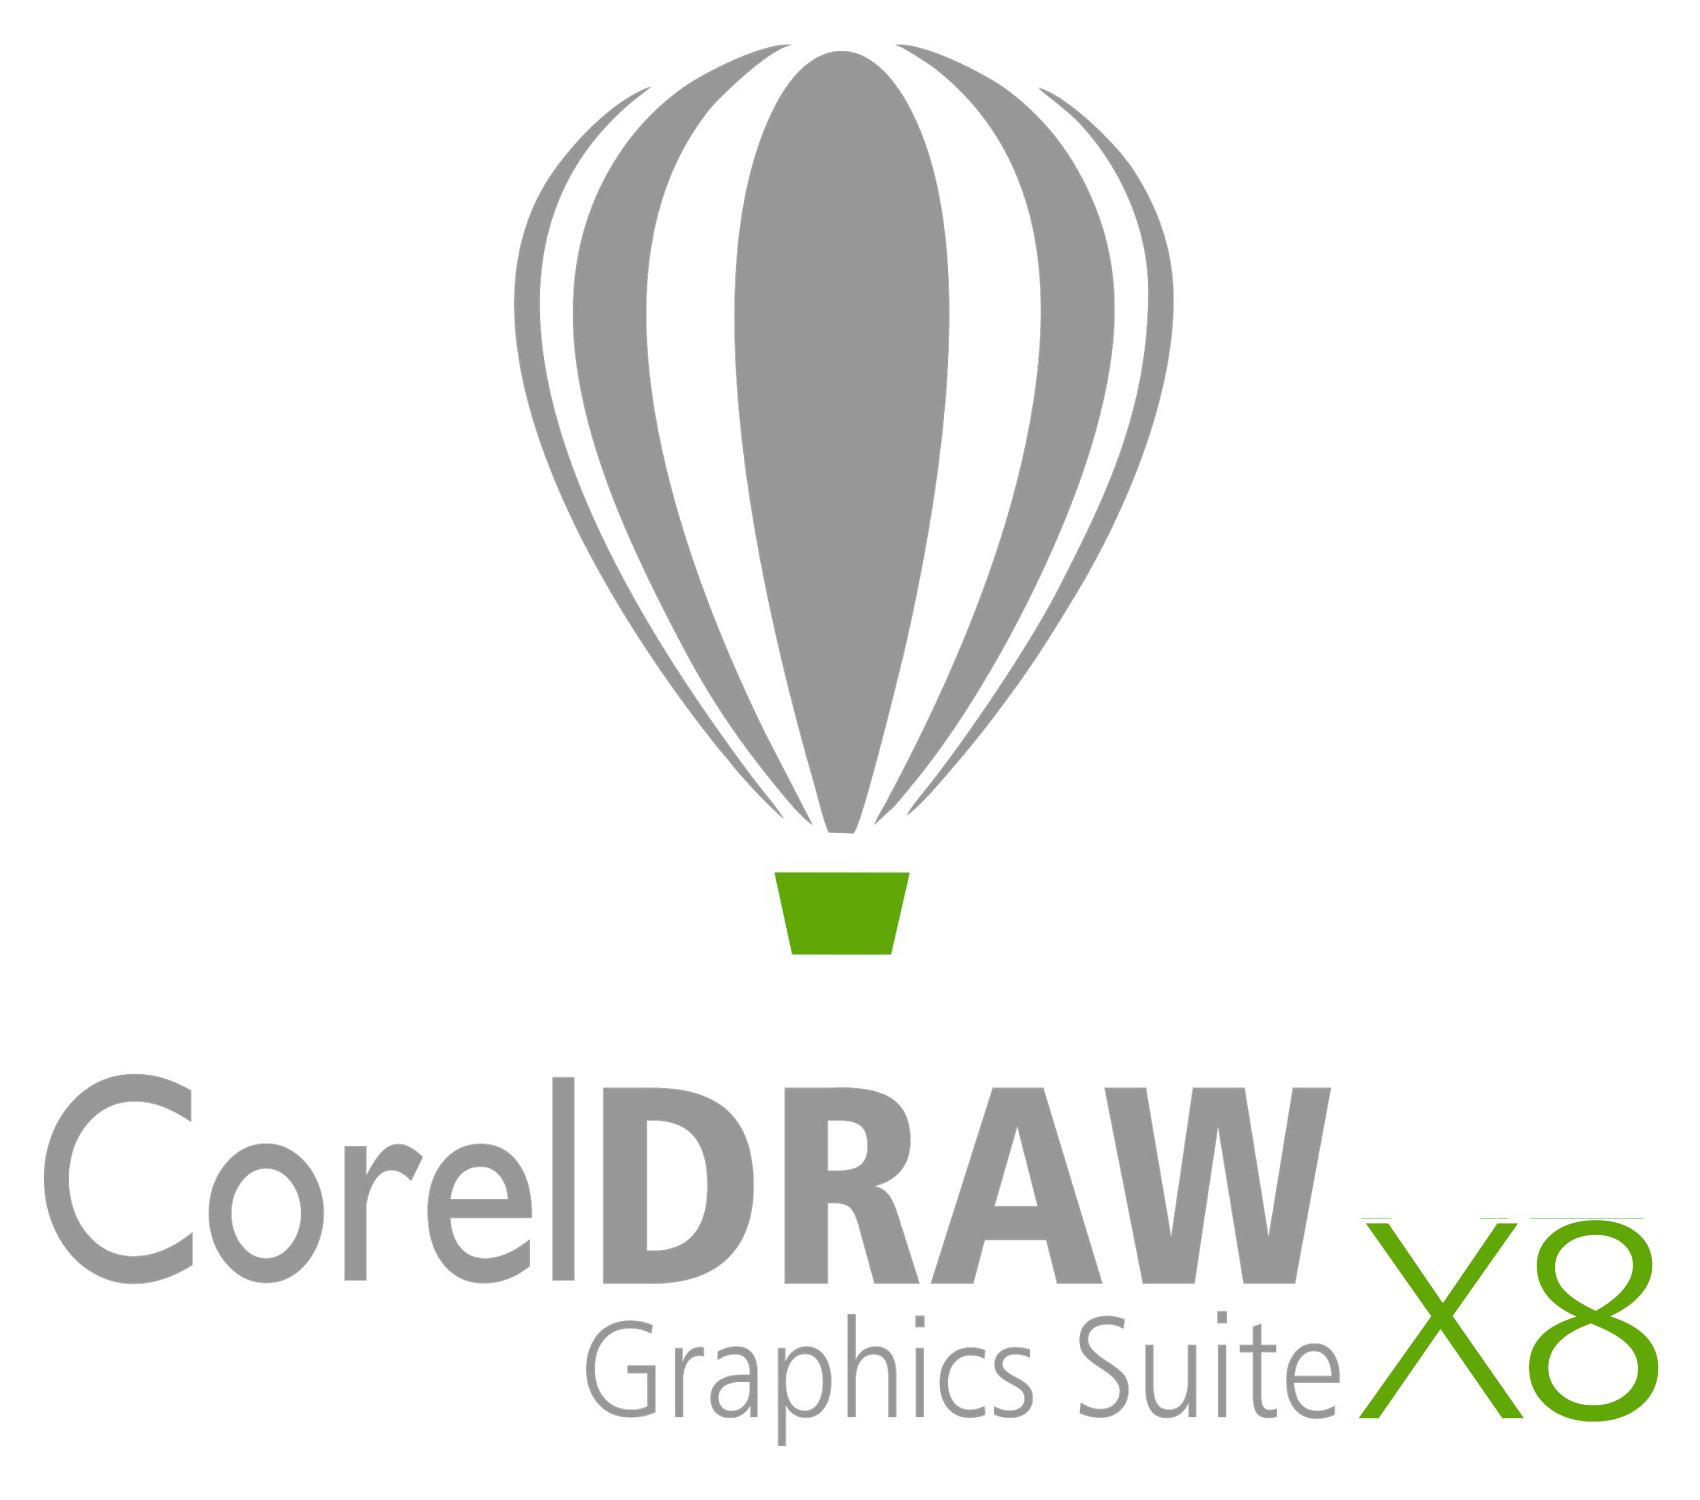 Download CorelDRAW X8 Graphics Suite Free